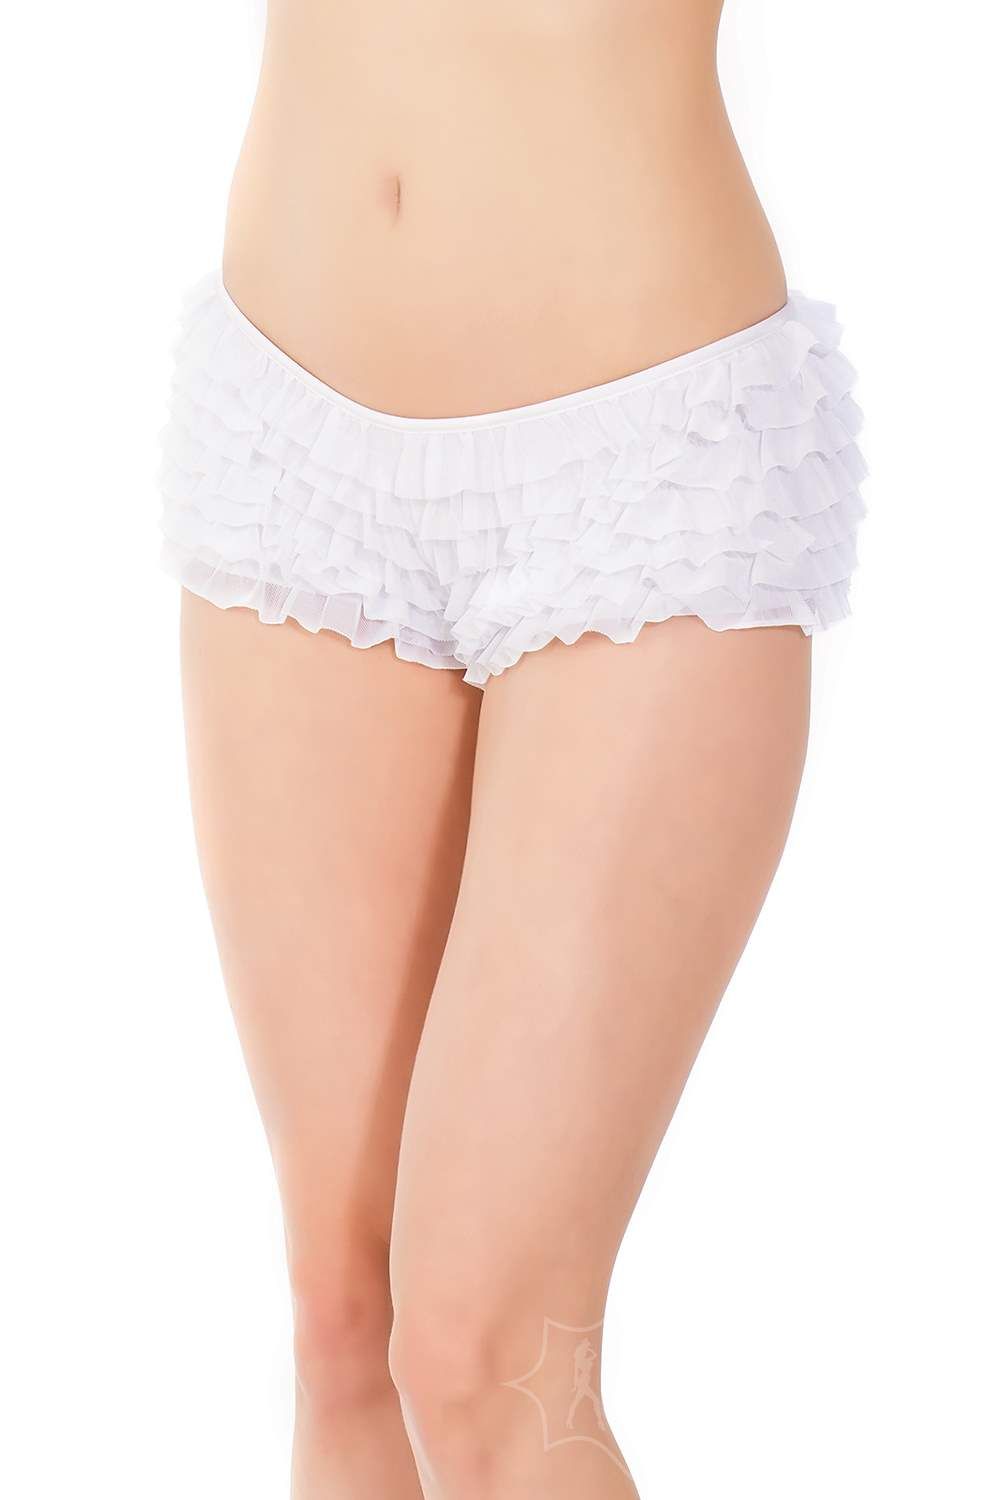 Super soft mesh ruffle panties back bow 0114 Edmonton